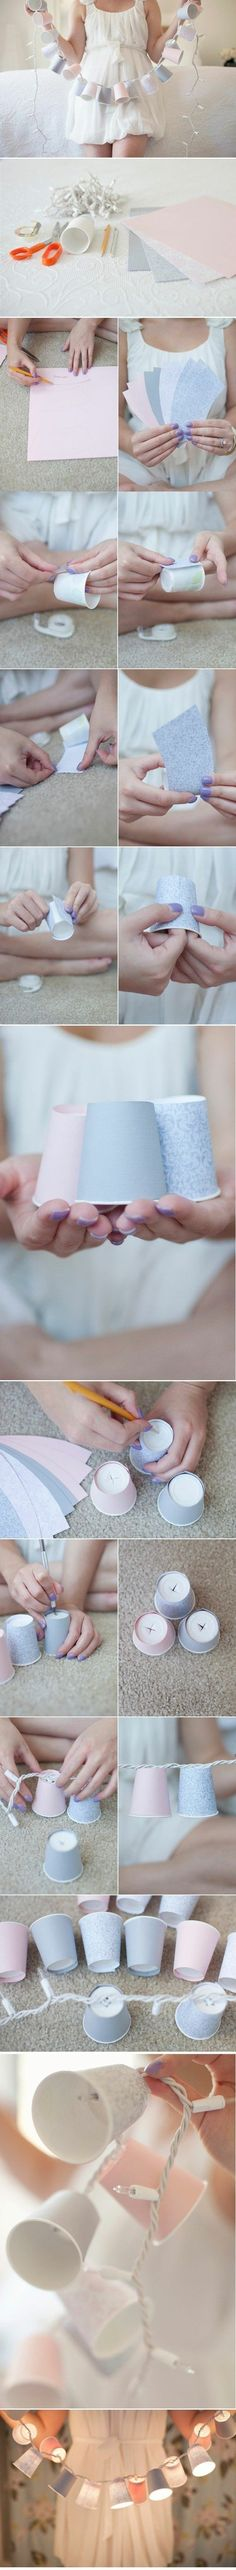 DIY Cover Dixie cups with fancy paper to make small shades for string lights.